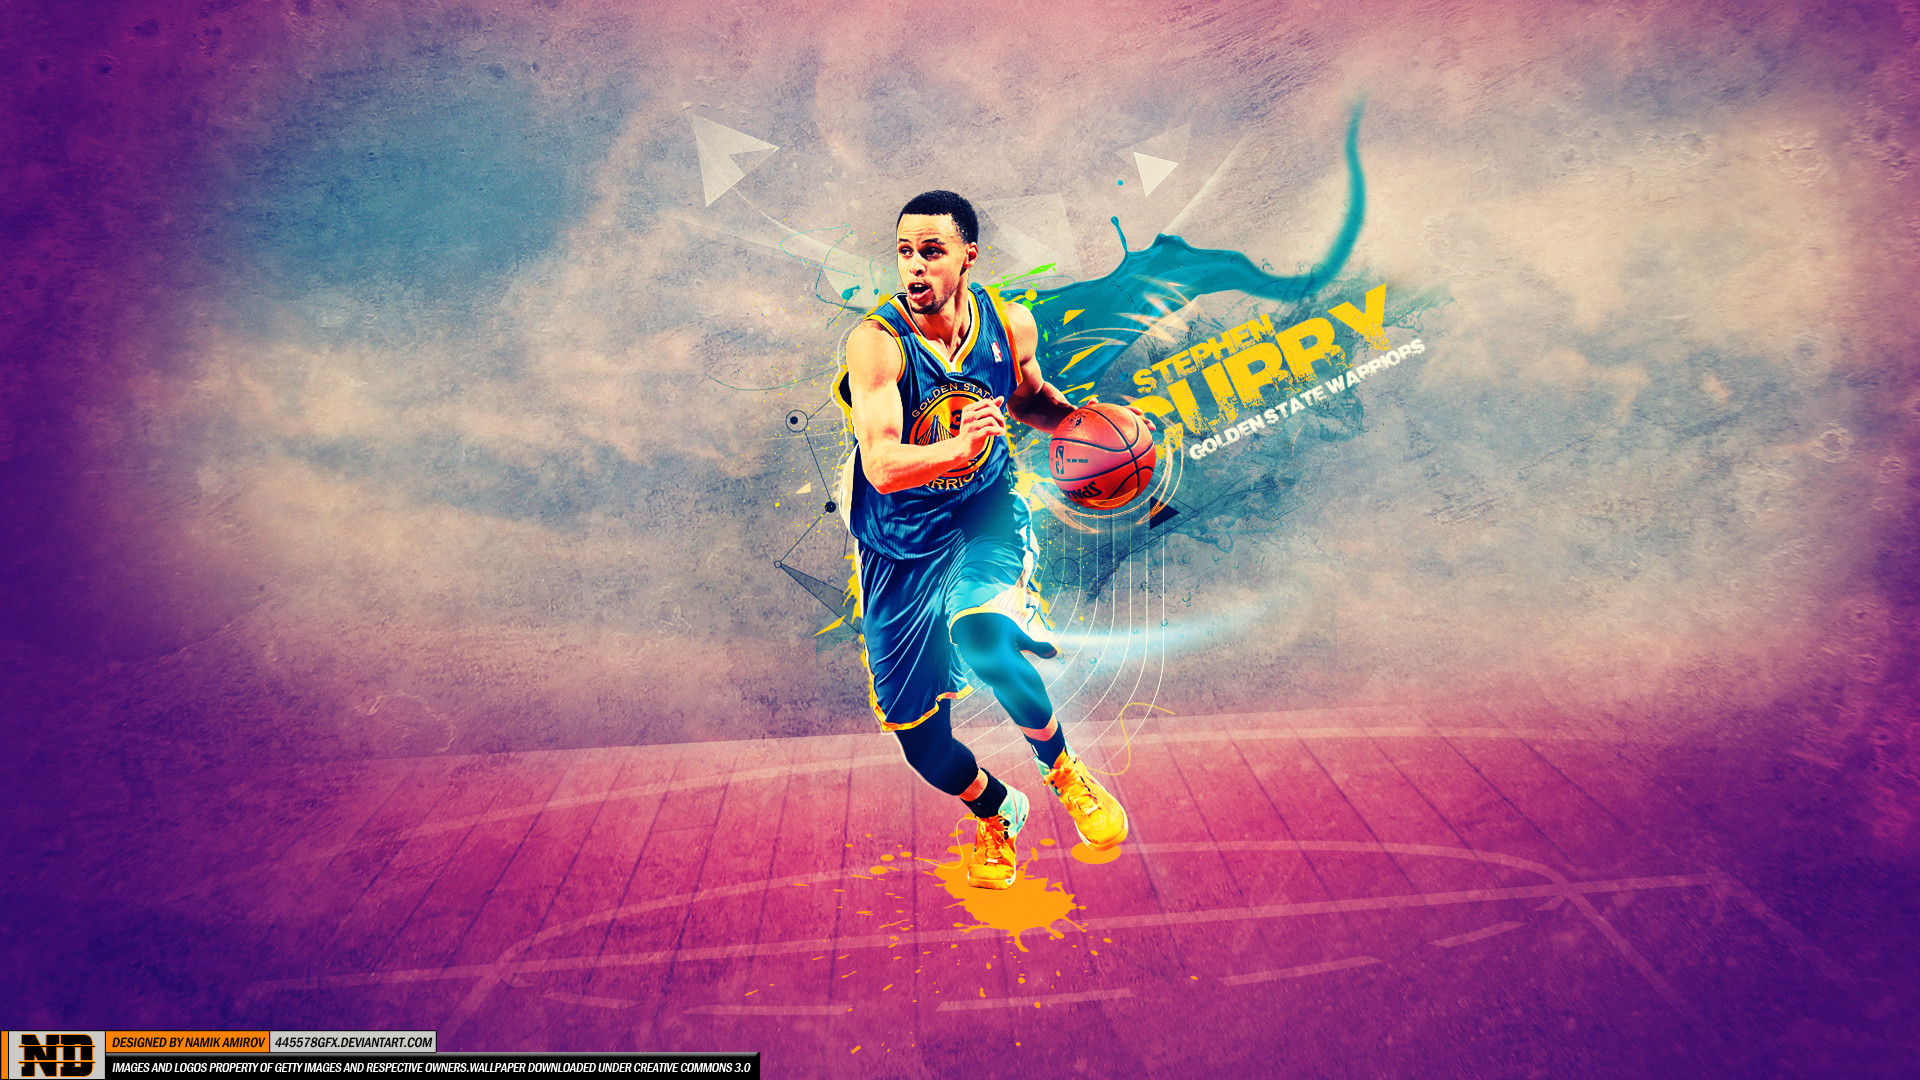 2048x1280 Golden State Warriors Wallpapers 81+ - Page 3 of 3 - yese69.com - 4K Wallpapers World